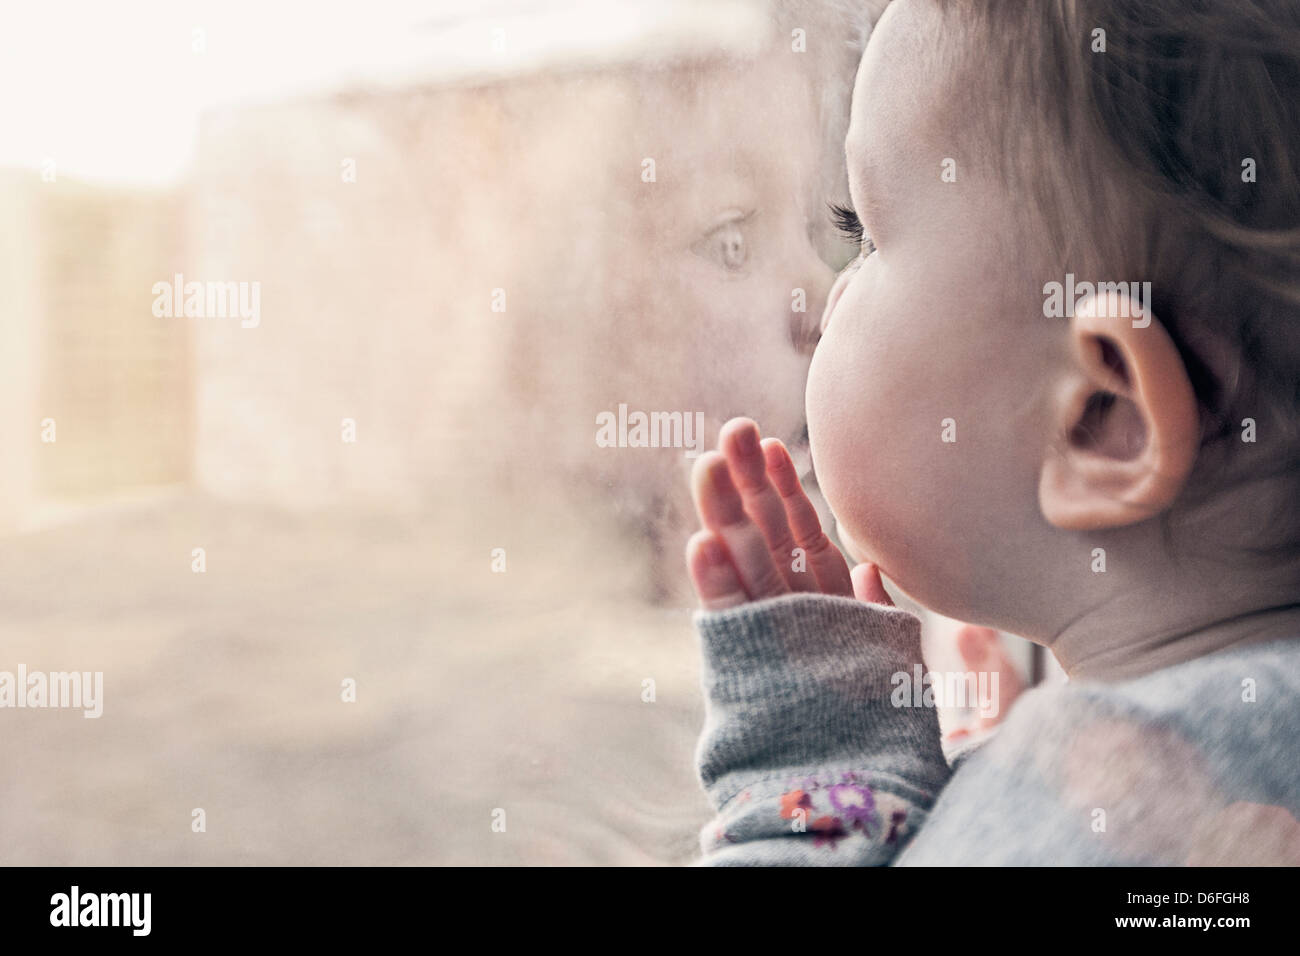 Cute infant girl looking out window - Stock Image